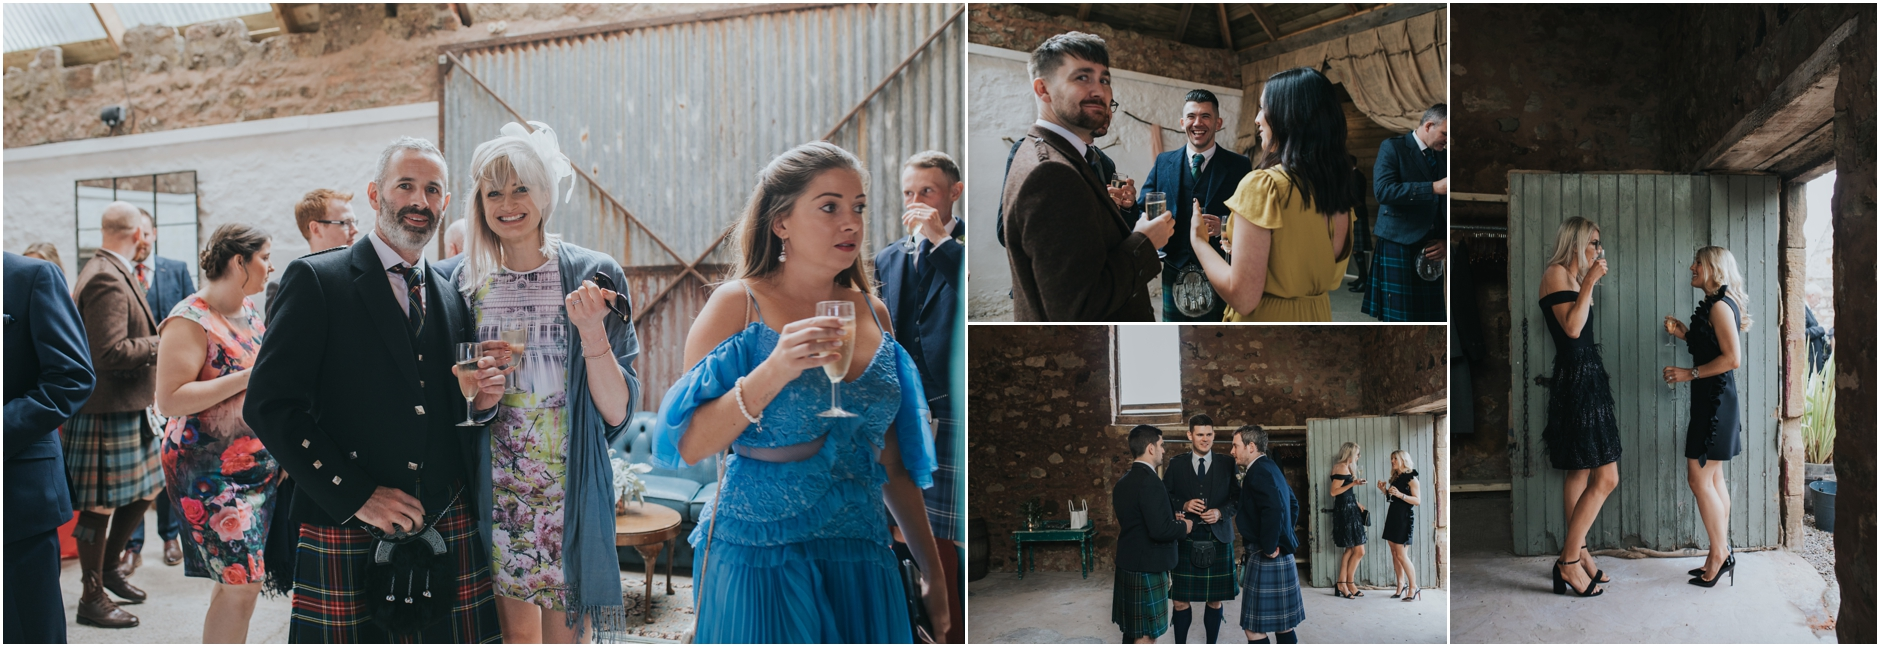 althernartive barn wedding scotland